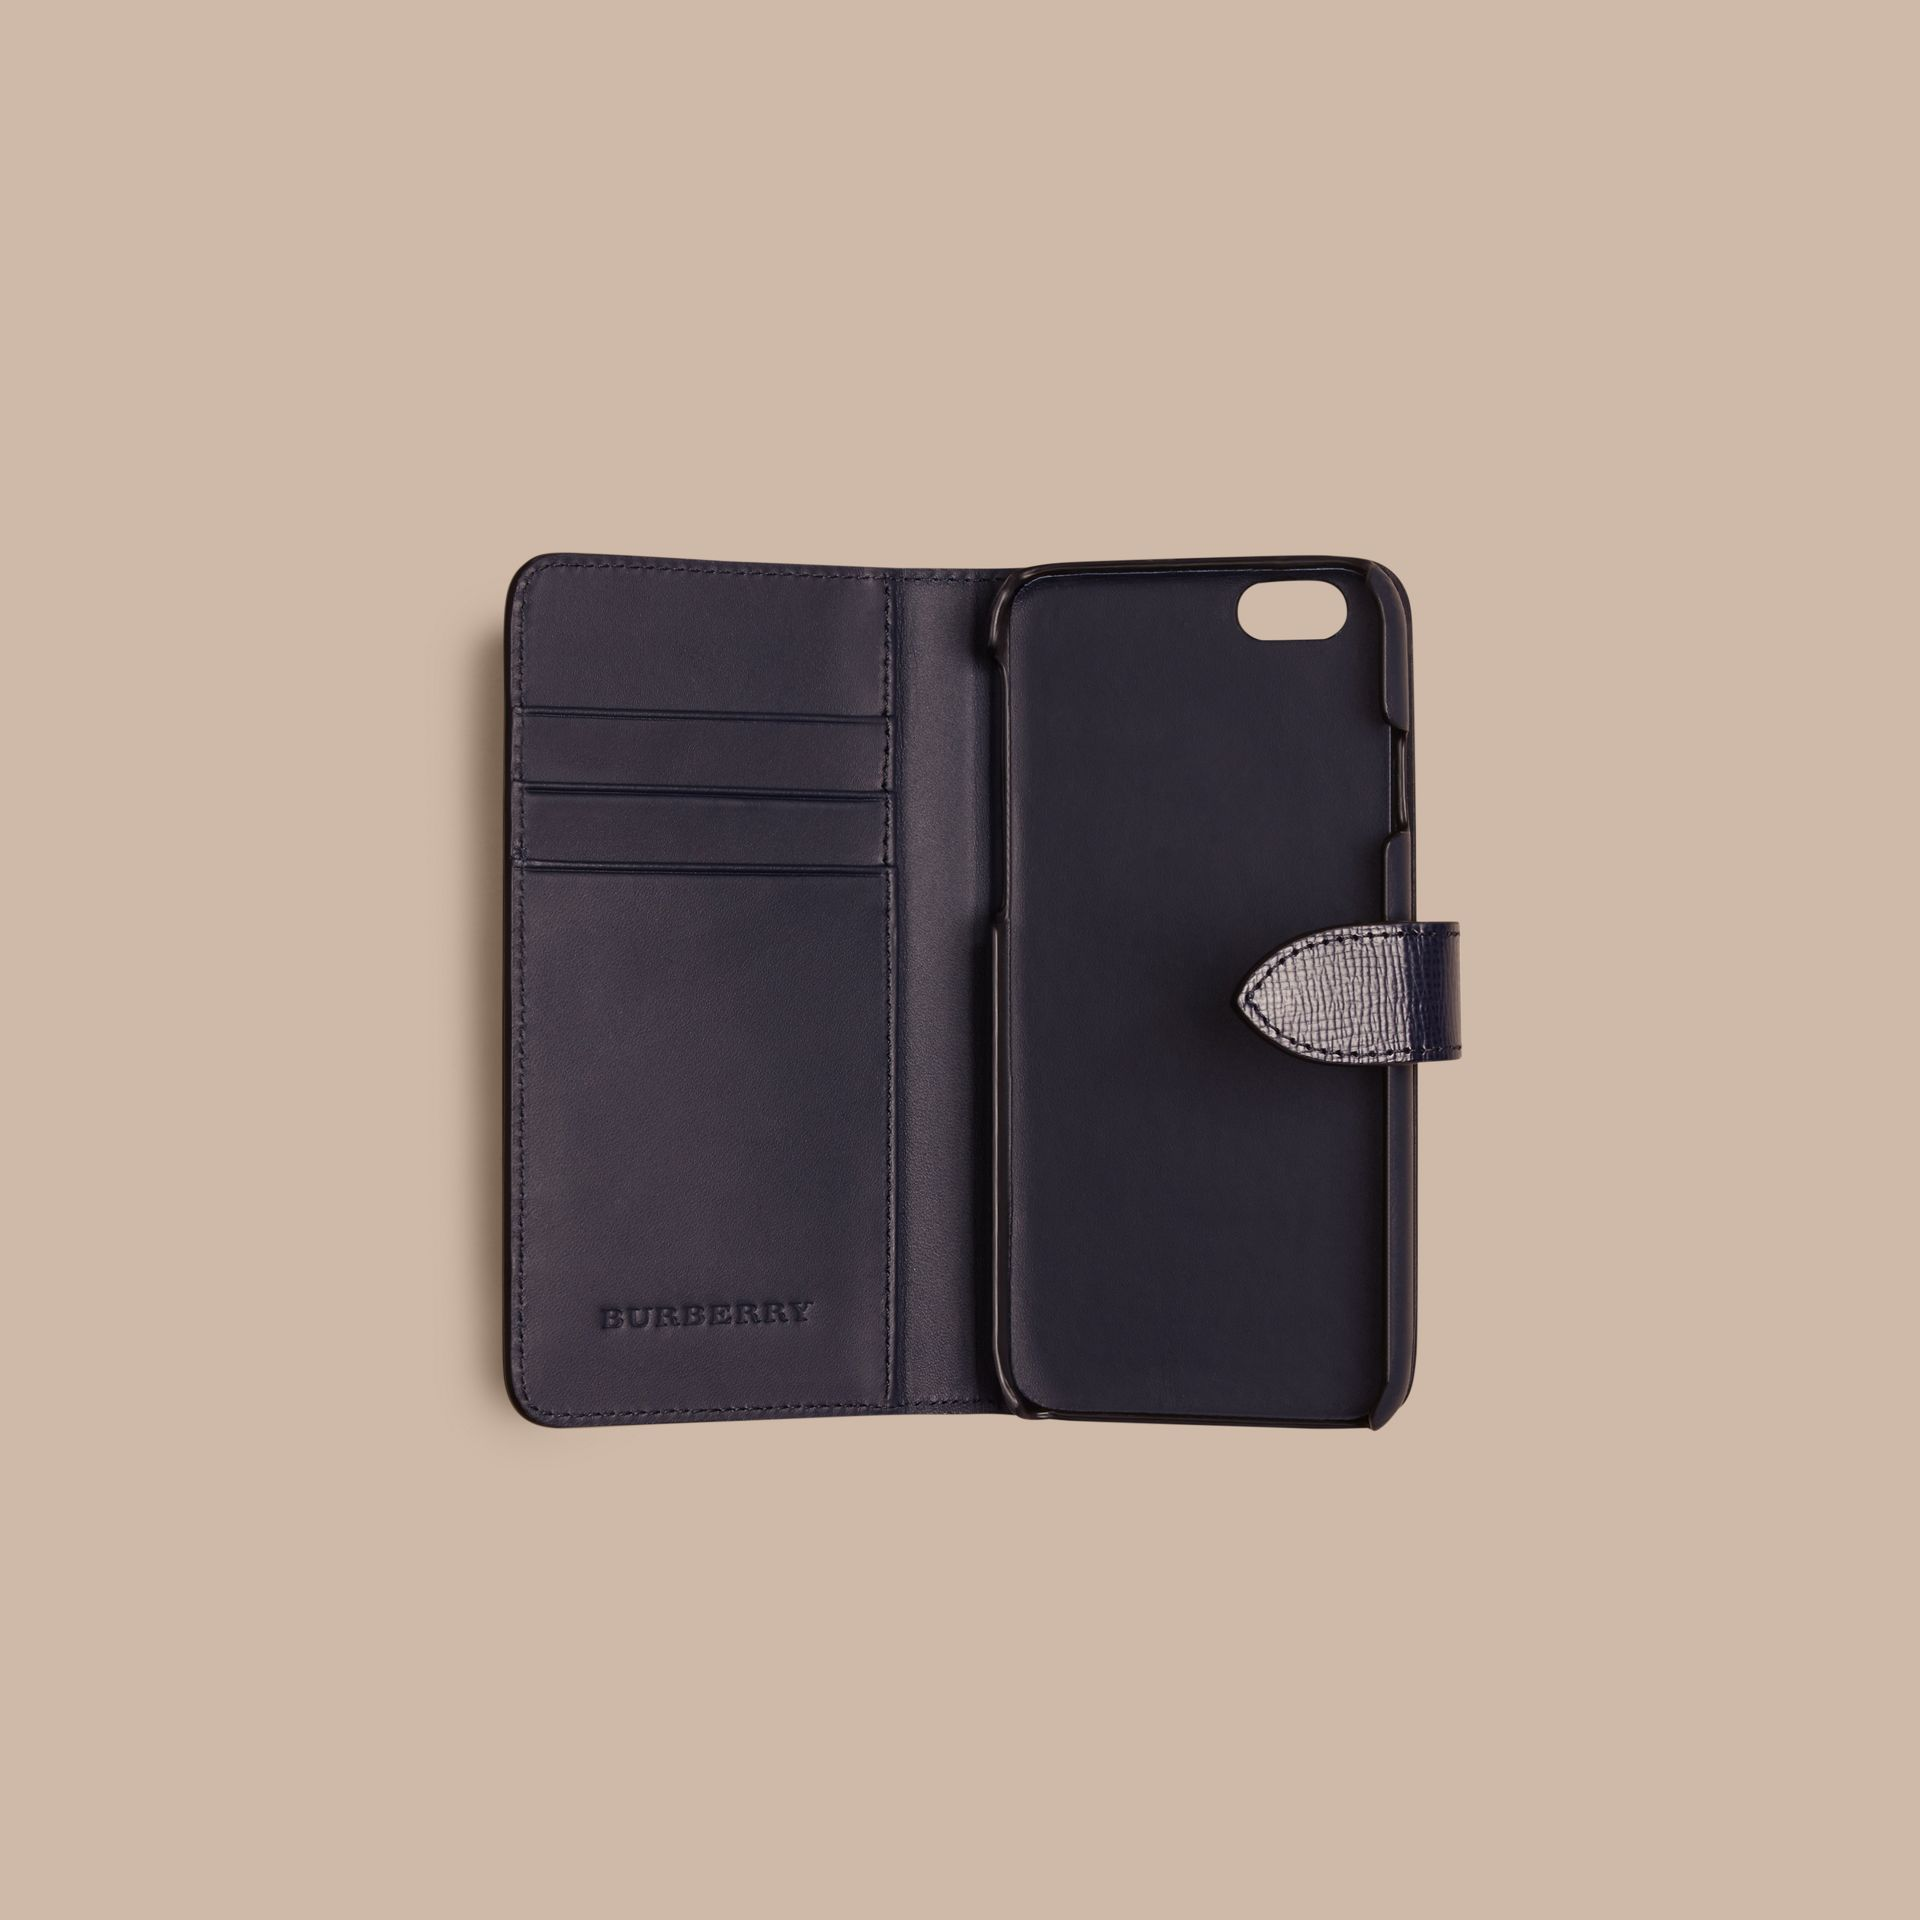 Navy scuro Custodia a libro in pelle London per iPhone 6 Navy Scuro - immagine della galleria 2